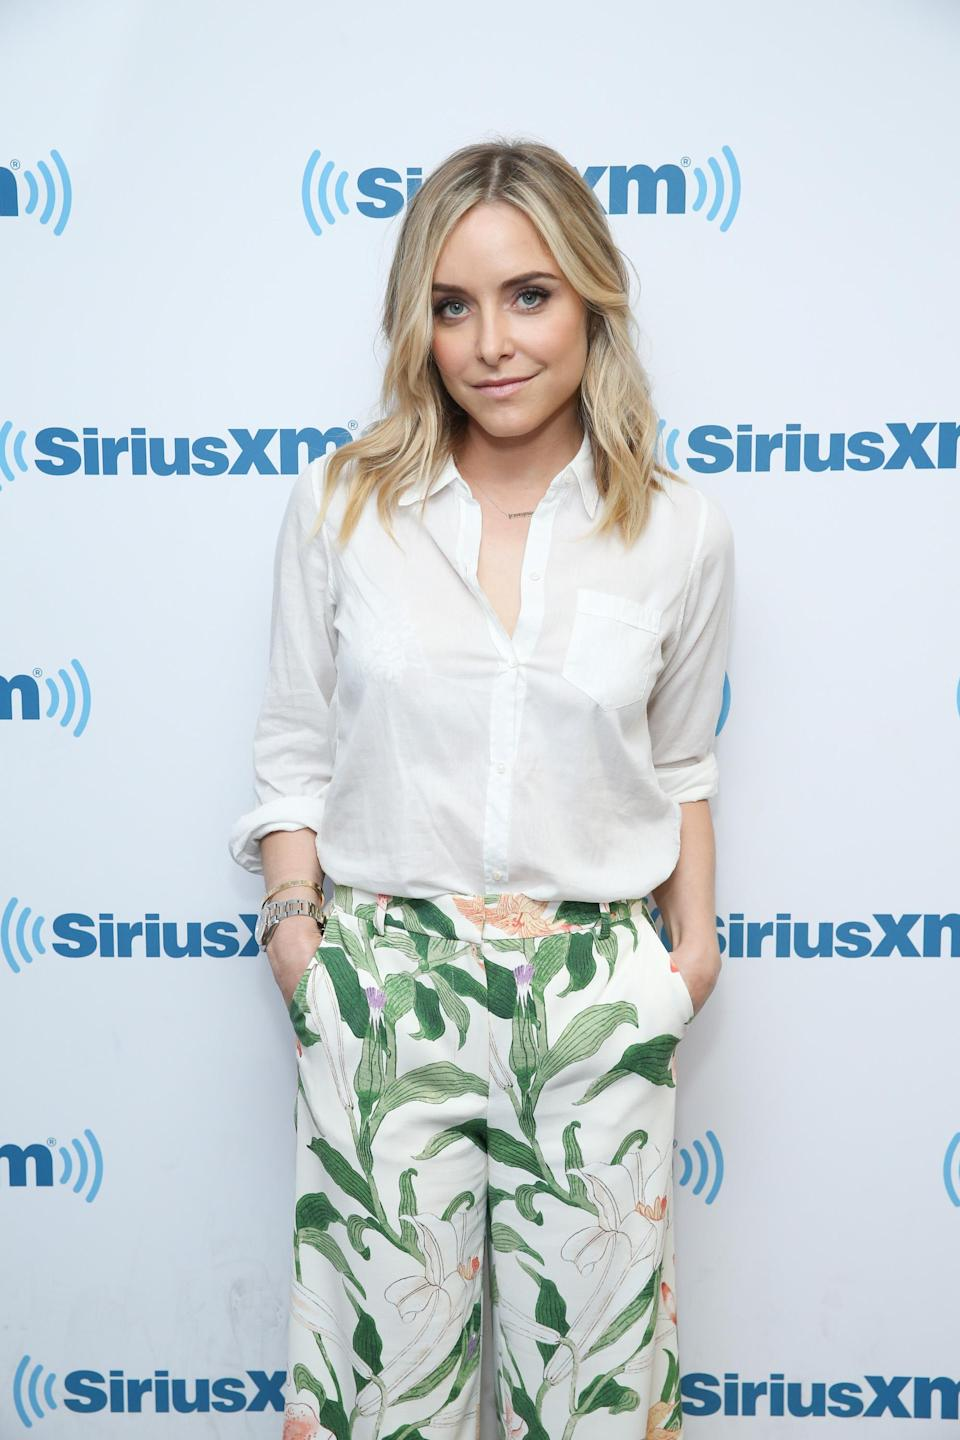 Author and actress, Jenny Mollen. Image via Getty Images.